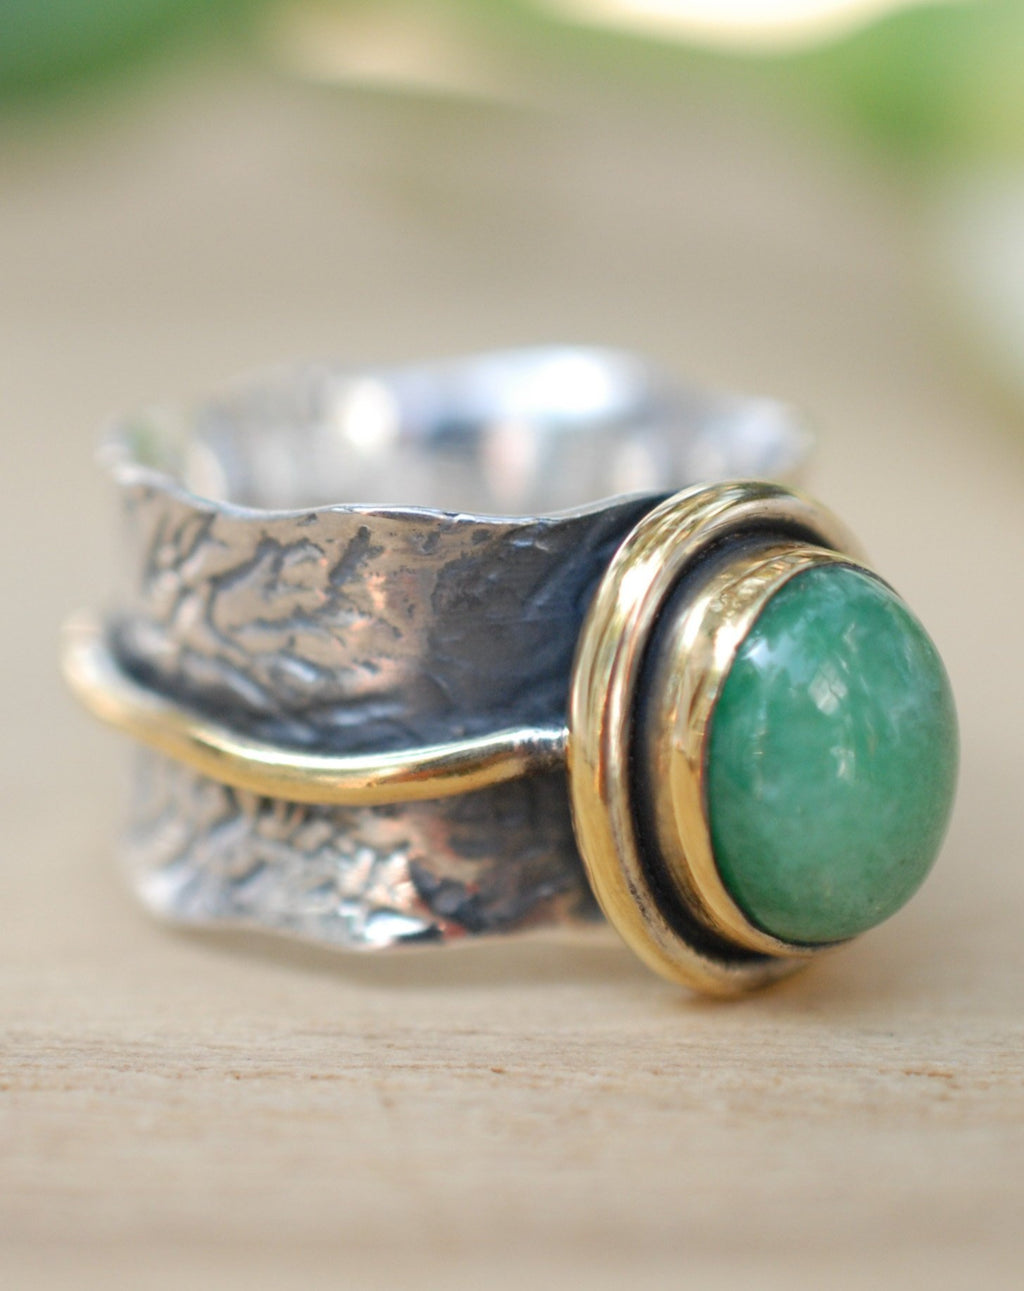 Emerald ring * Sterling silver ring * Gold Vermeil ring * Wide ring * Handmade ring * Wave band ring * Gemstone* Green Stone BJR207